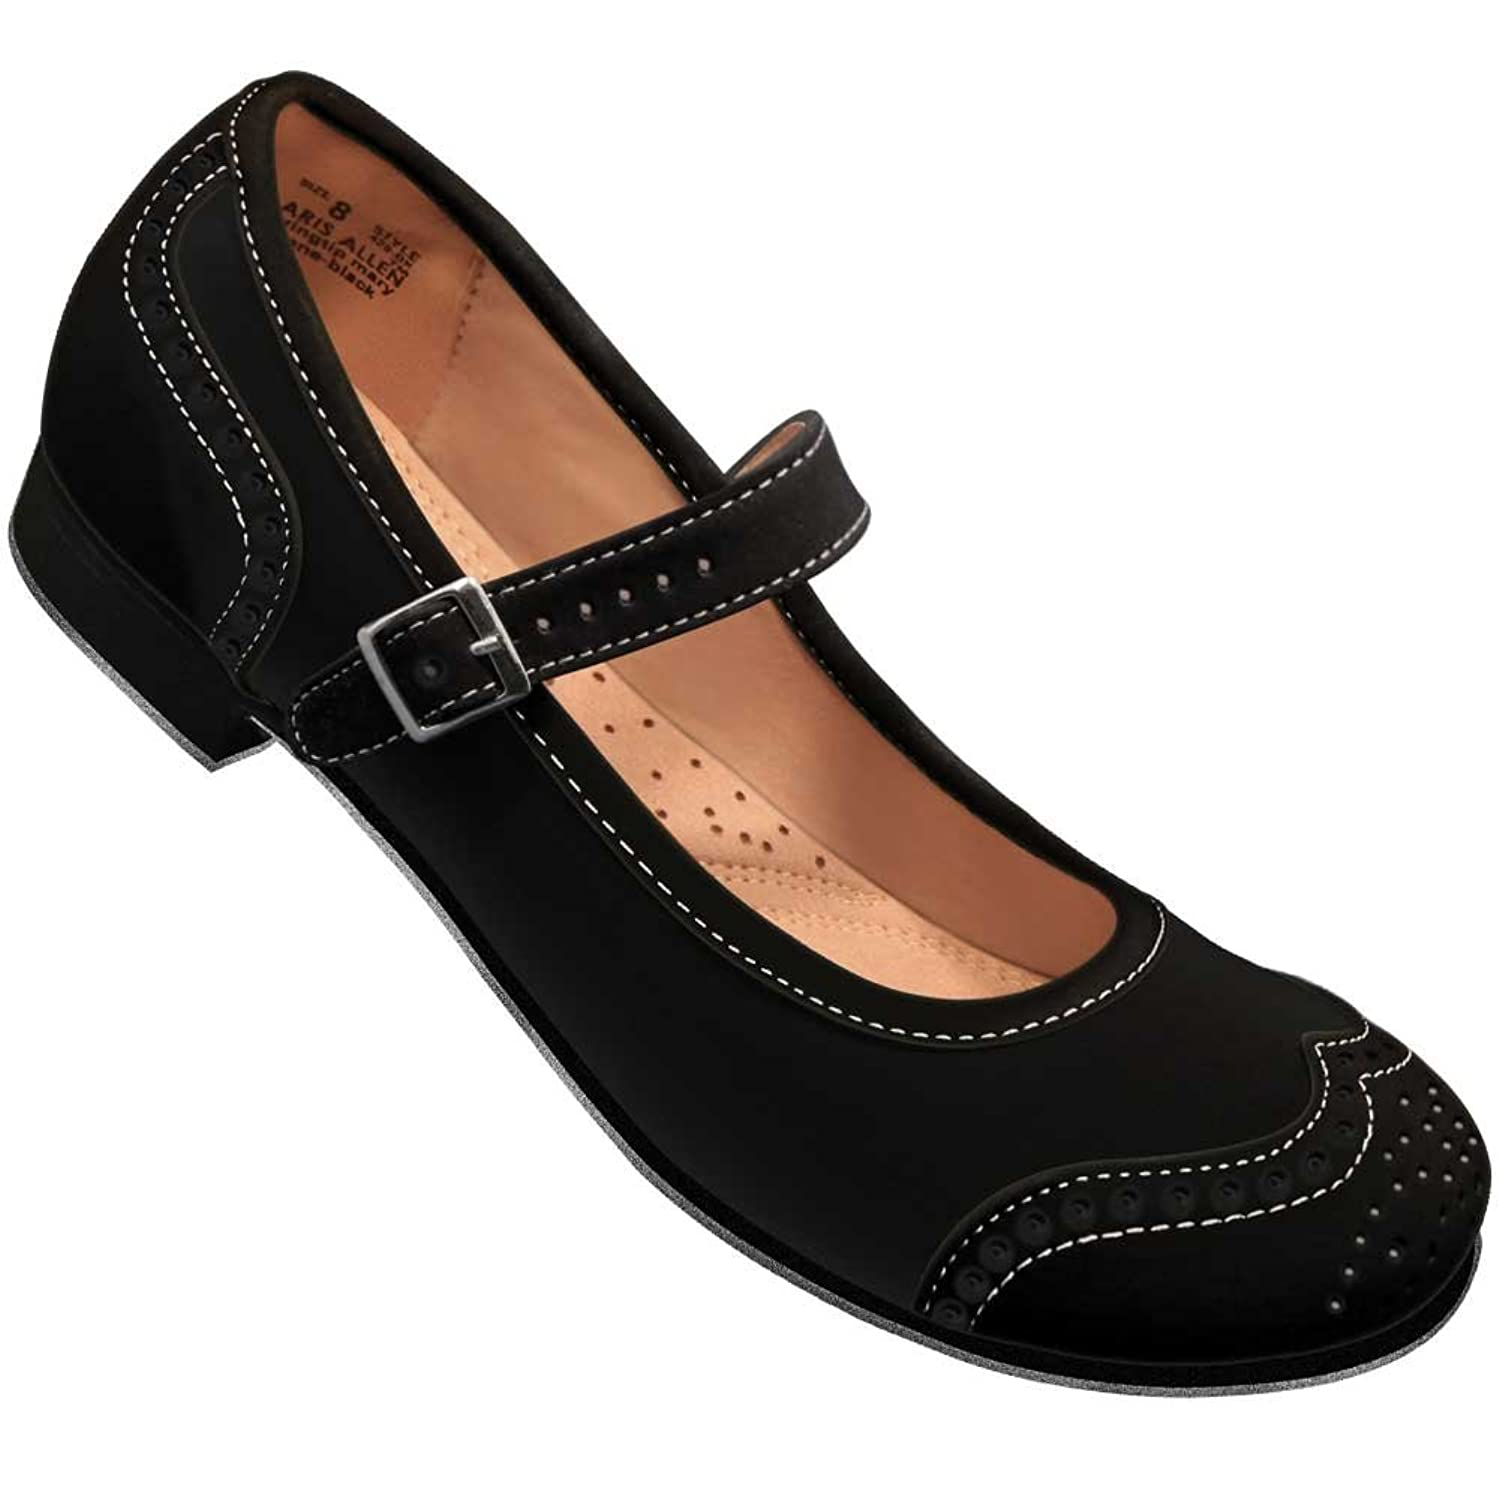 Swing Dance Shoes- Vintage, Lindy Hop, Tap, Ballroom Aris Allen Black Snub Toe Mary Jane Wingtips $48.95 AT vintagedancer.com